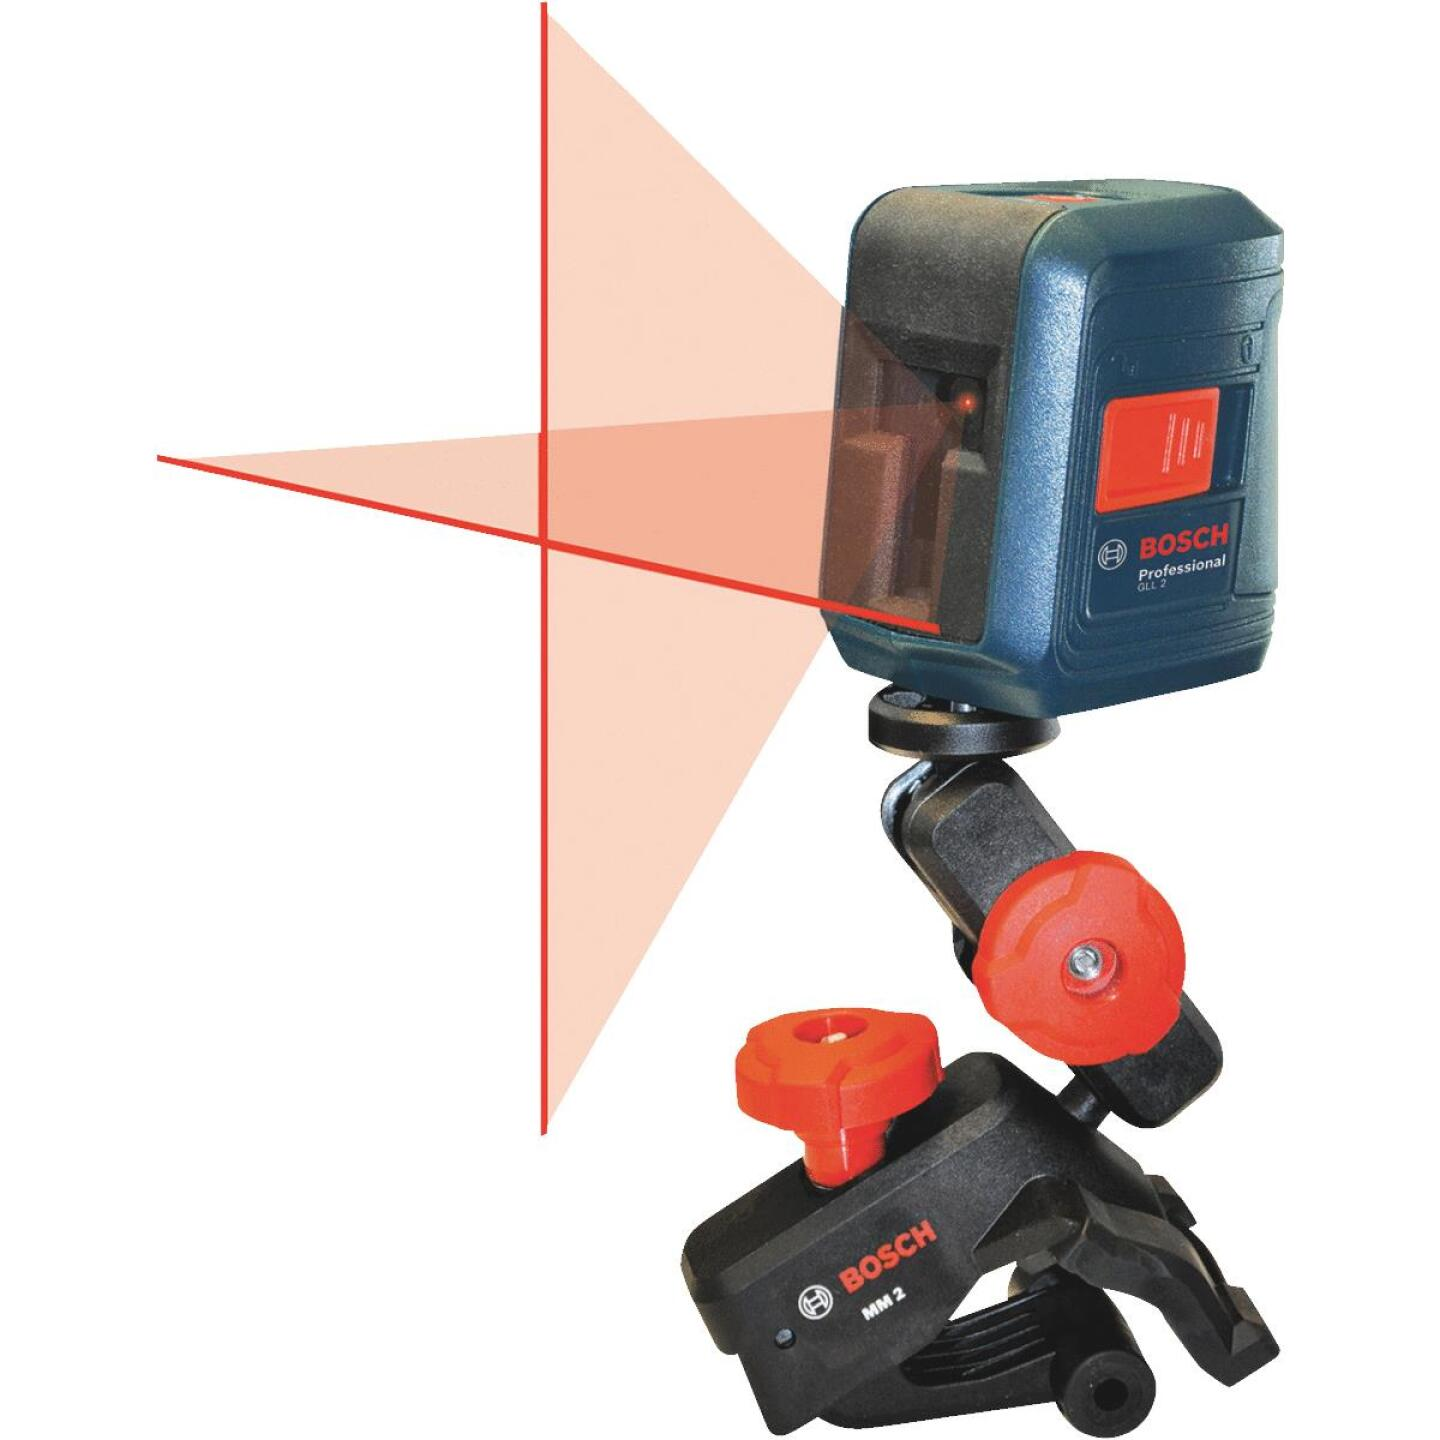 Bosch 30 Ft. Self-Leveling Cross-Line Laser Level Image 1